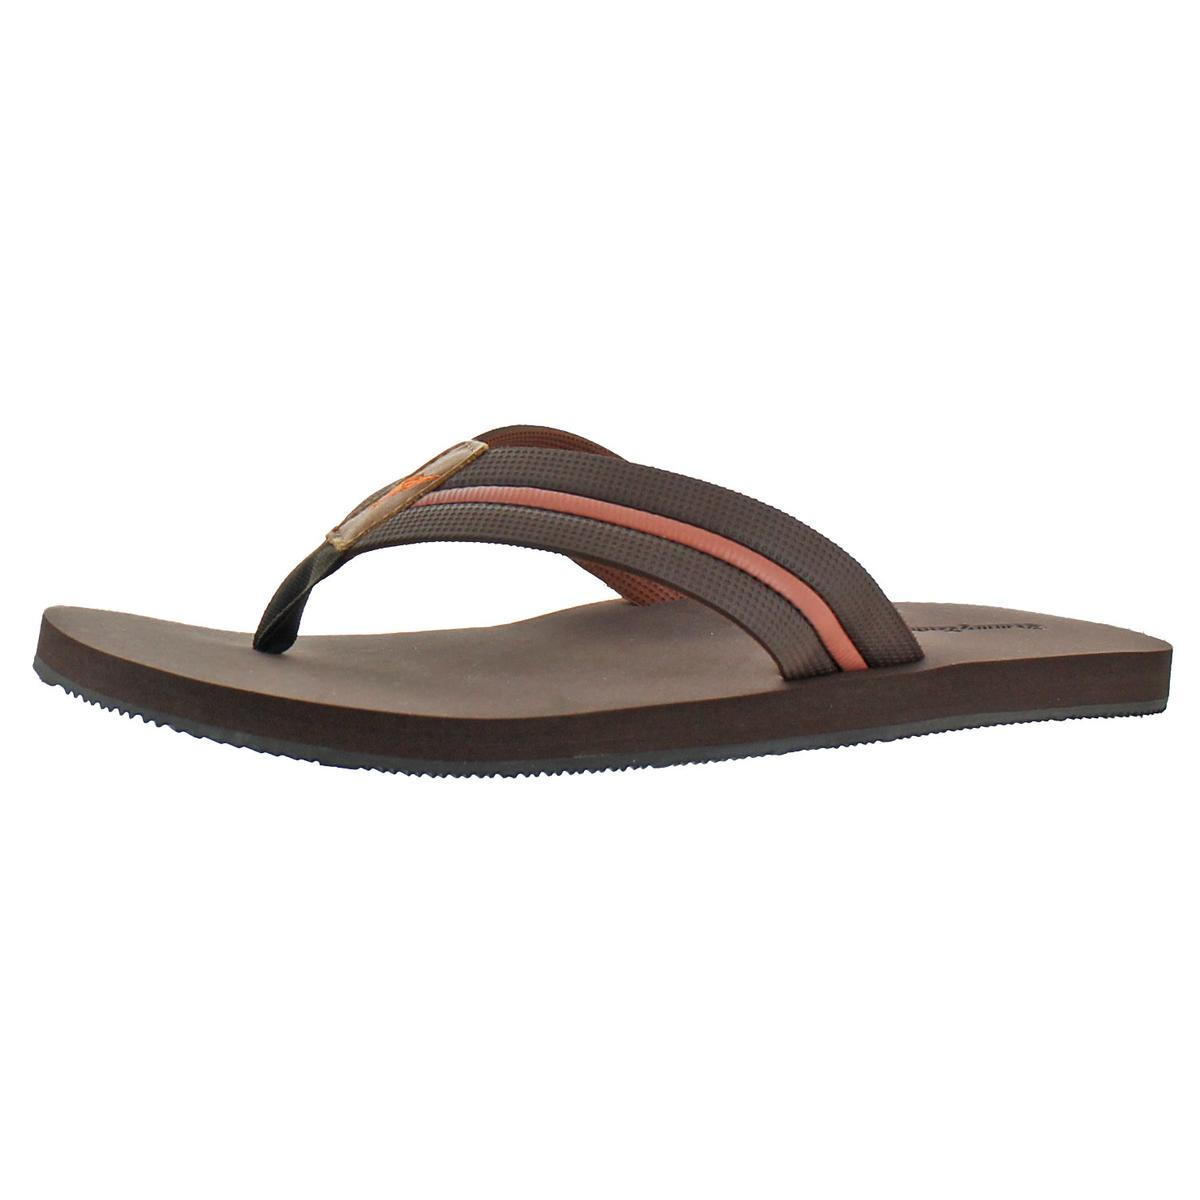 bce9b1c626403 Tommy Bahama Mens Taheeti Flip Flop Dark Brown 14 D US. About this product.  Picture 1 of 6  Picture 2 of 6  Picture 3 of 6  Picture 4 of 6